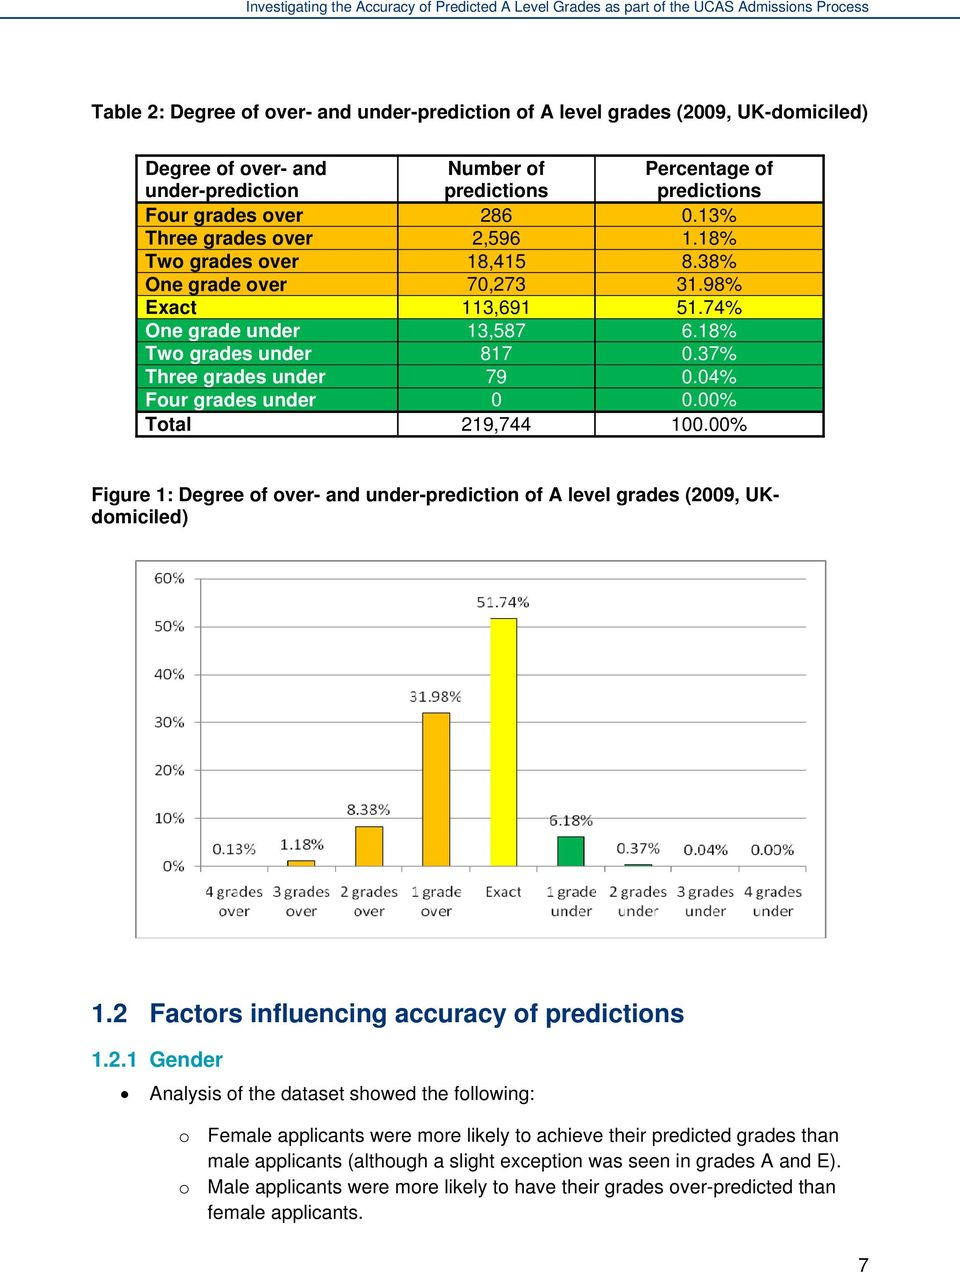 04% Percentage of predictions Four grades under 0 0.00% Total 219,744 100.00% Figure 1: Degree of over- and under-prediction of A level grades (2009, UKdomiciled) 1.